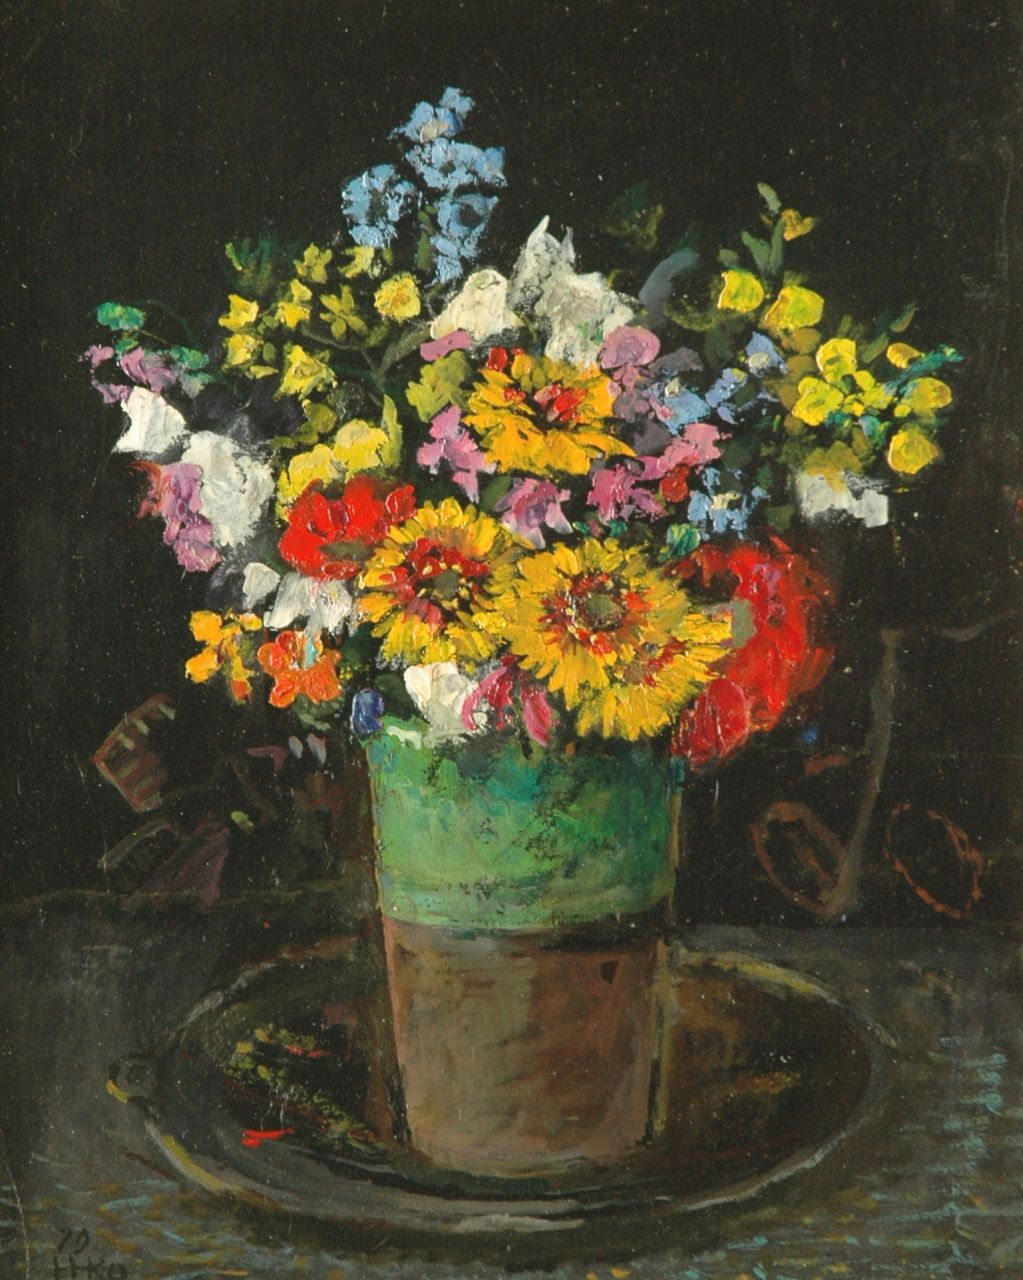 Kamerlingh Onnes H.H.  | 'Harm' Henrick Kamerlingh Onnes, A colourful bouquet in a green vase, oil on board 34.5 x 28.0 cm, signed l.l. with monogram and dated '79